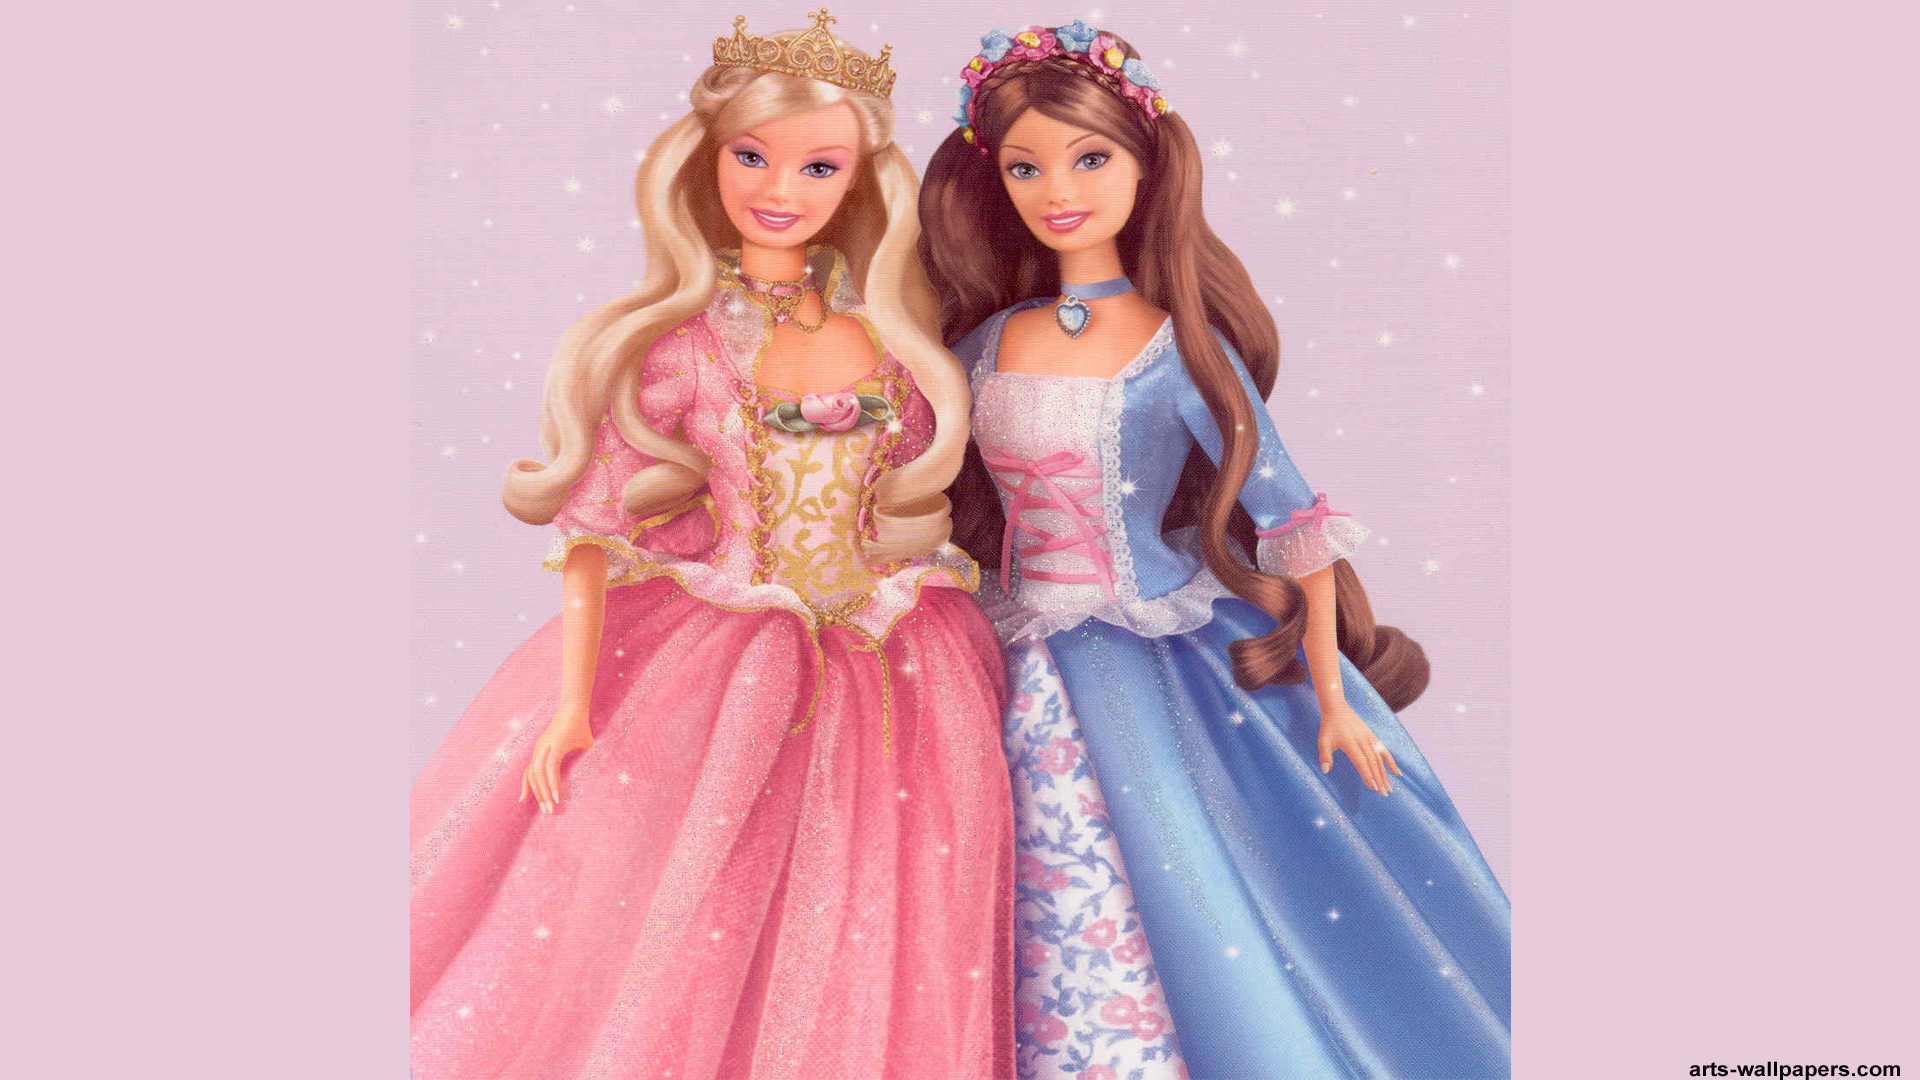 Hindi Movie Wallpapers With Quotes Barbie As The Princess And The Pauper Wallpaper Barbie